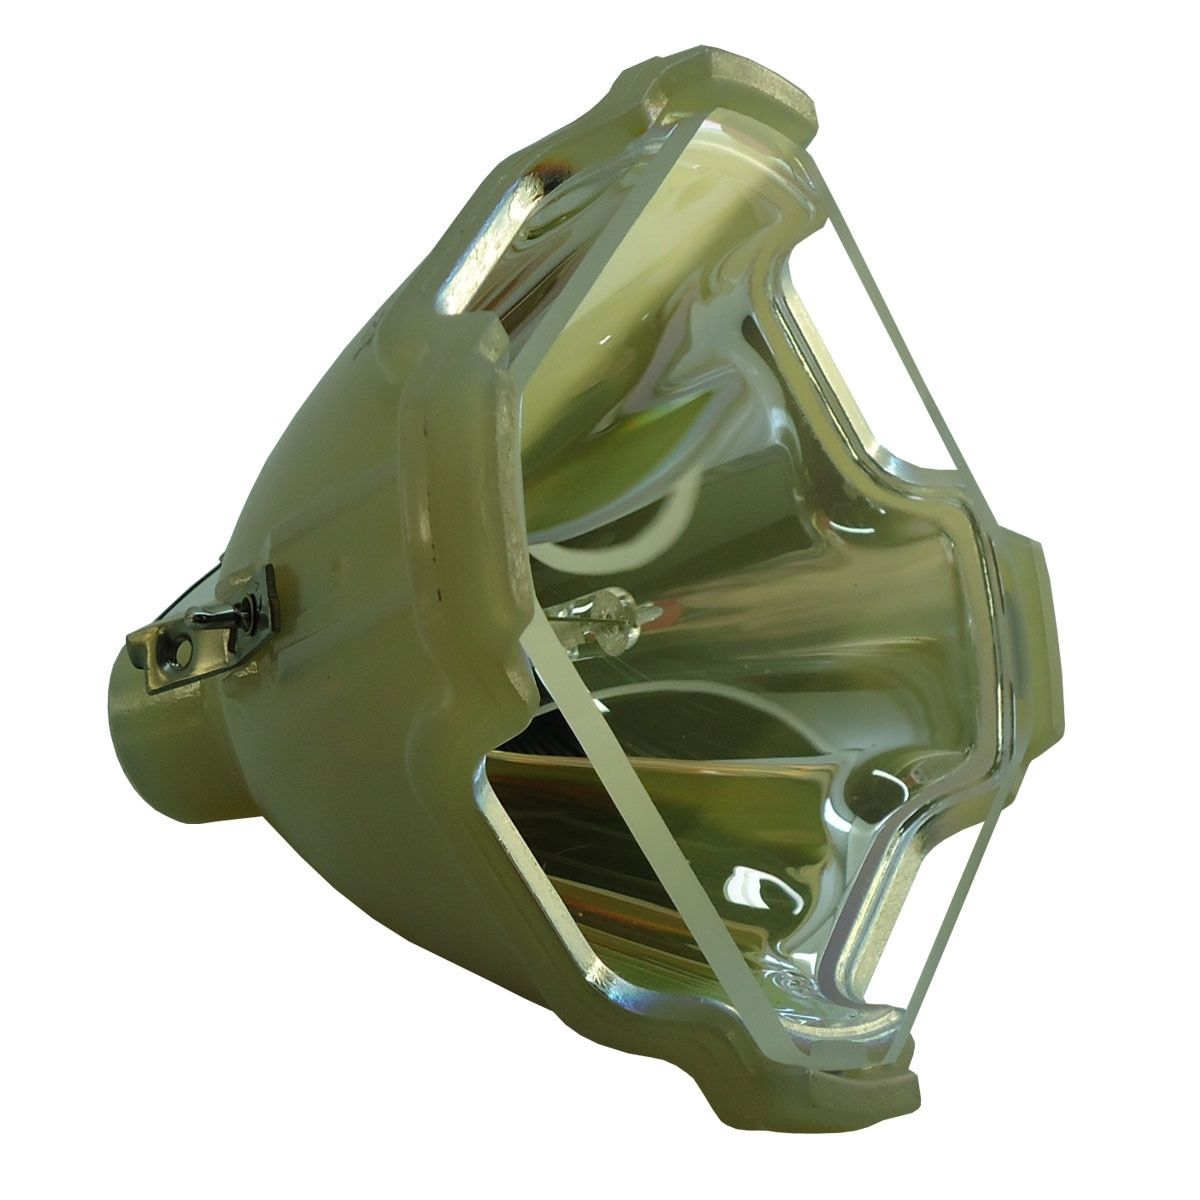 Compatible Bare Bulb 003-120242-01 for CHRISTIE LX380 LX450 LX300 VIVID LX380 / VIVID LX450 Projector Lamp Bulb without housing